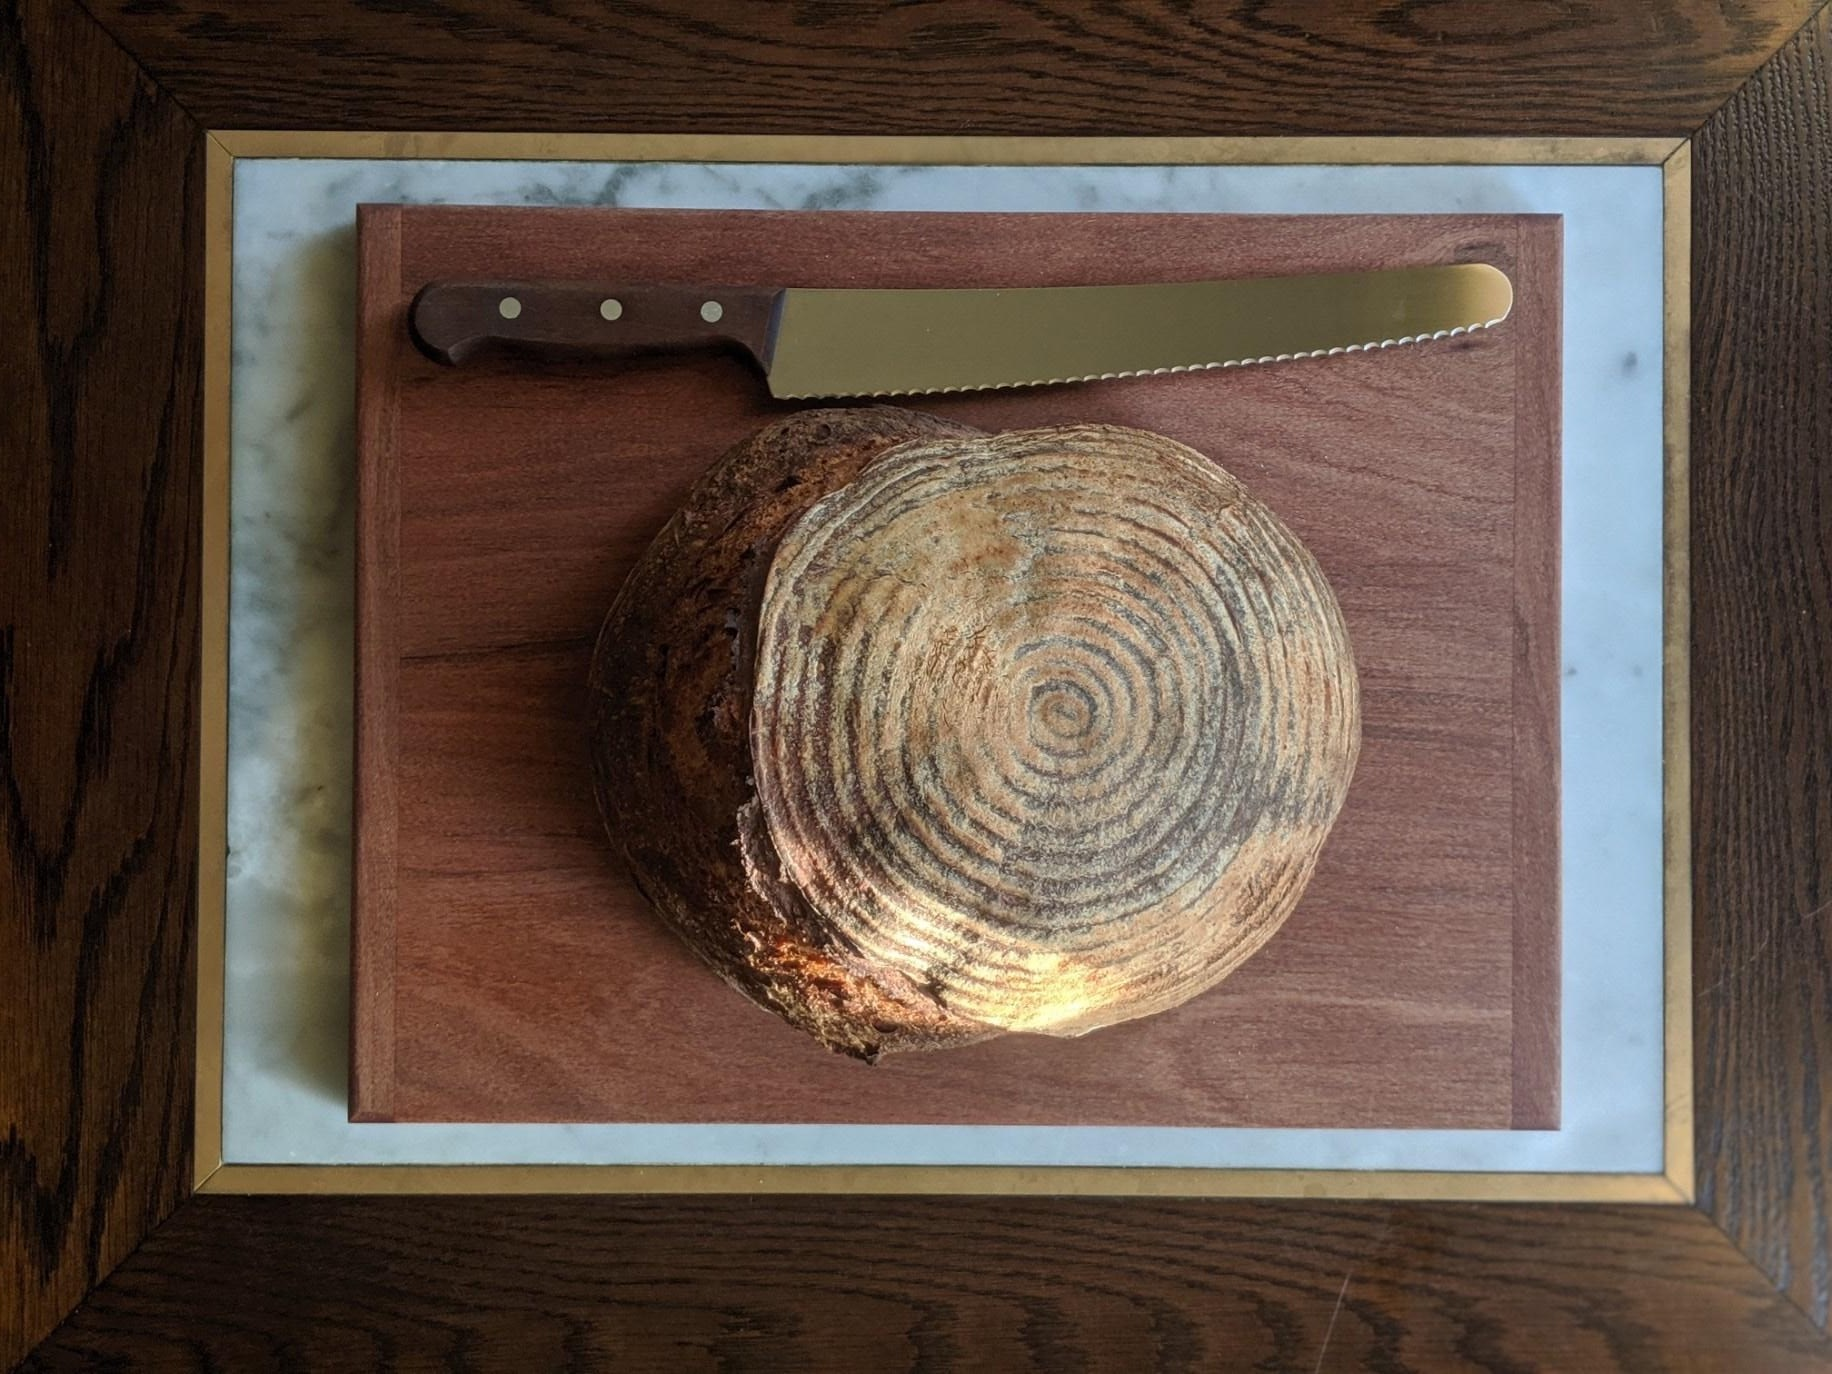 A loaf of sourdough bread on a cutting board with a knife